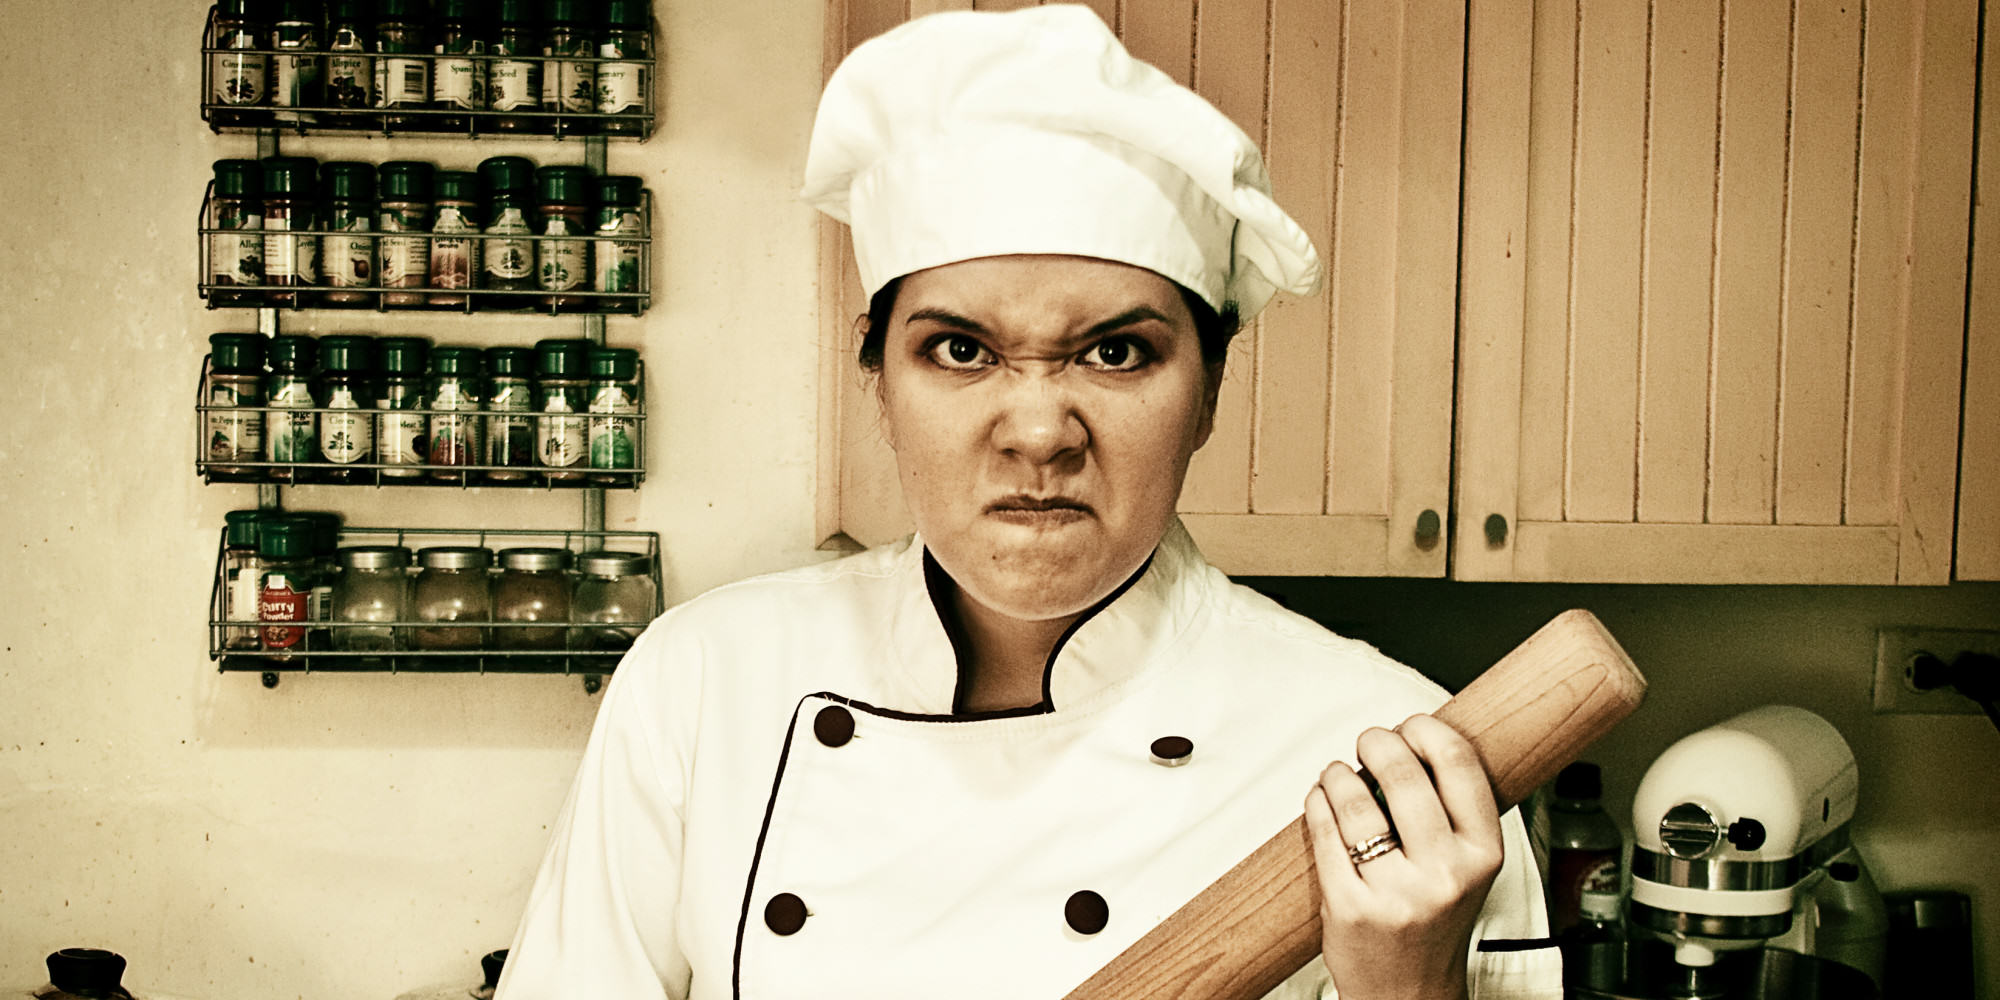 These Horrific Kitchen Accidents Will Put You Off Eating For The Day chefs6